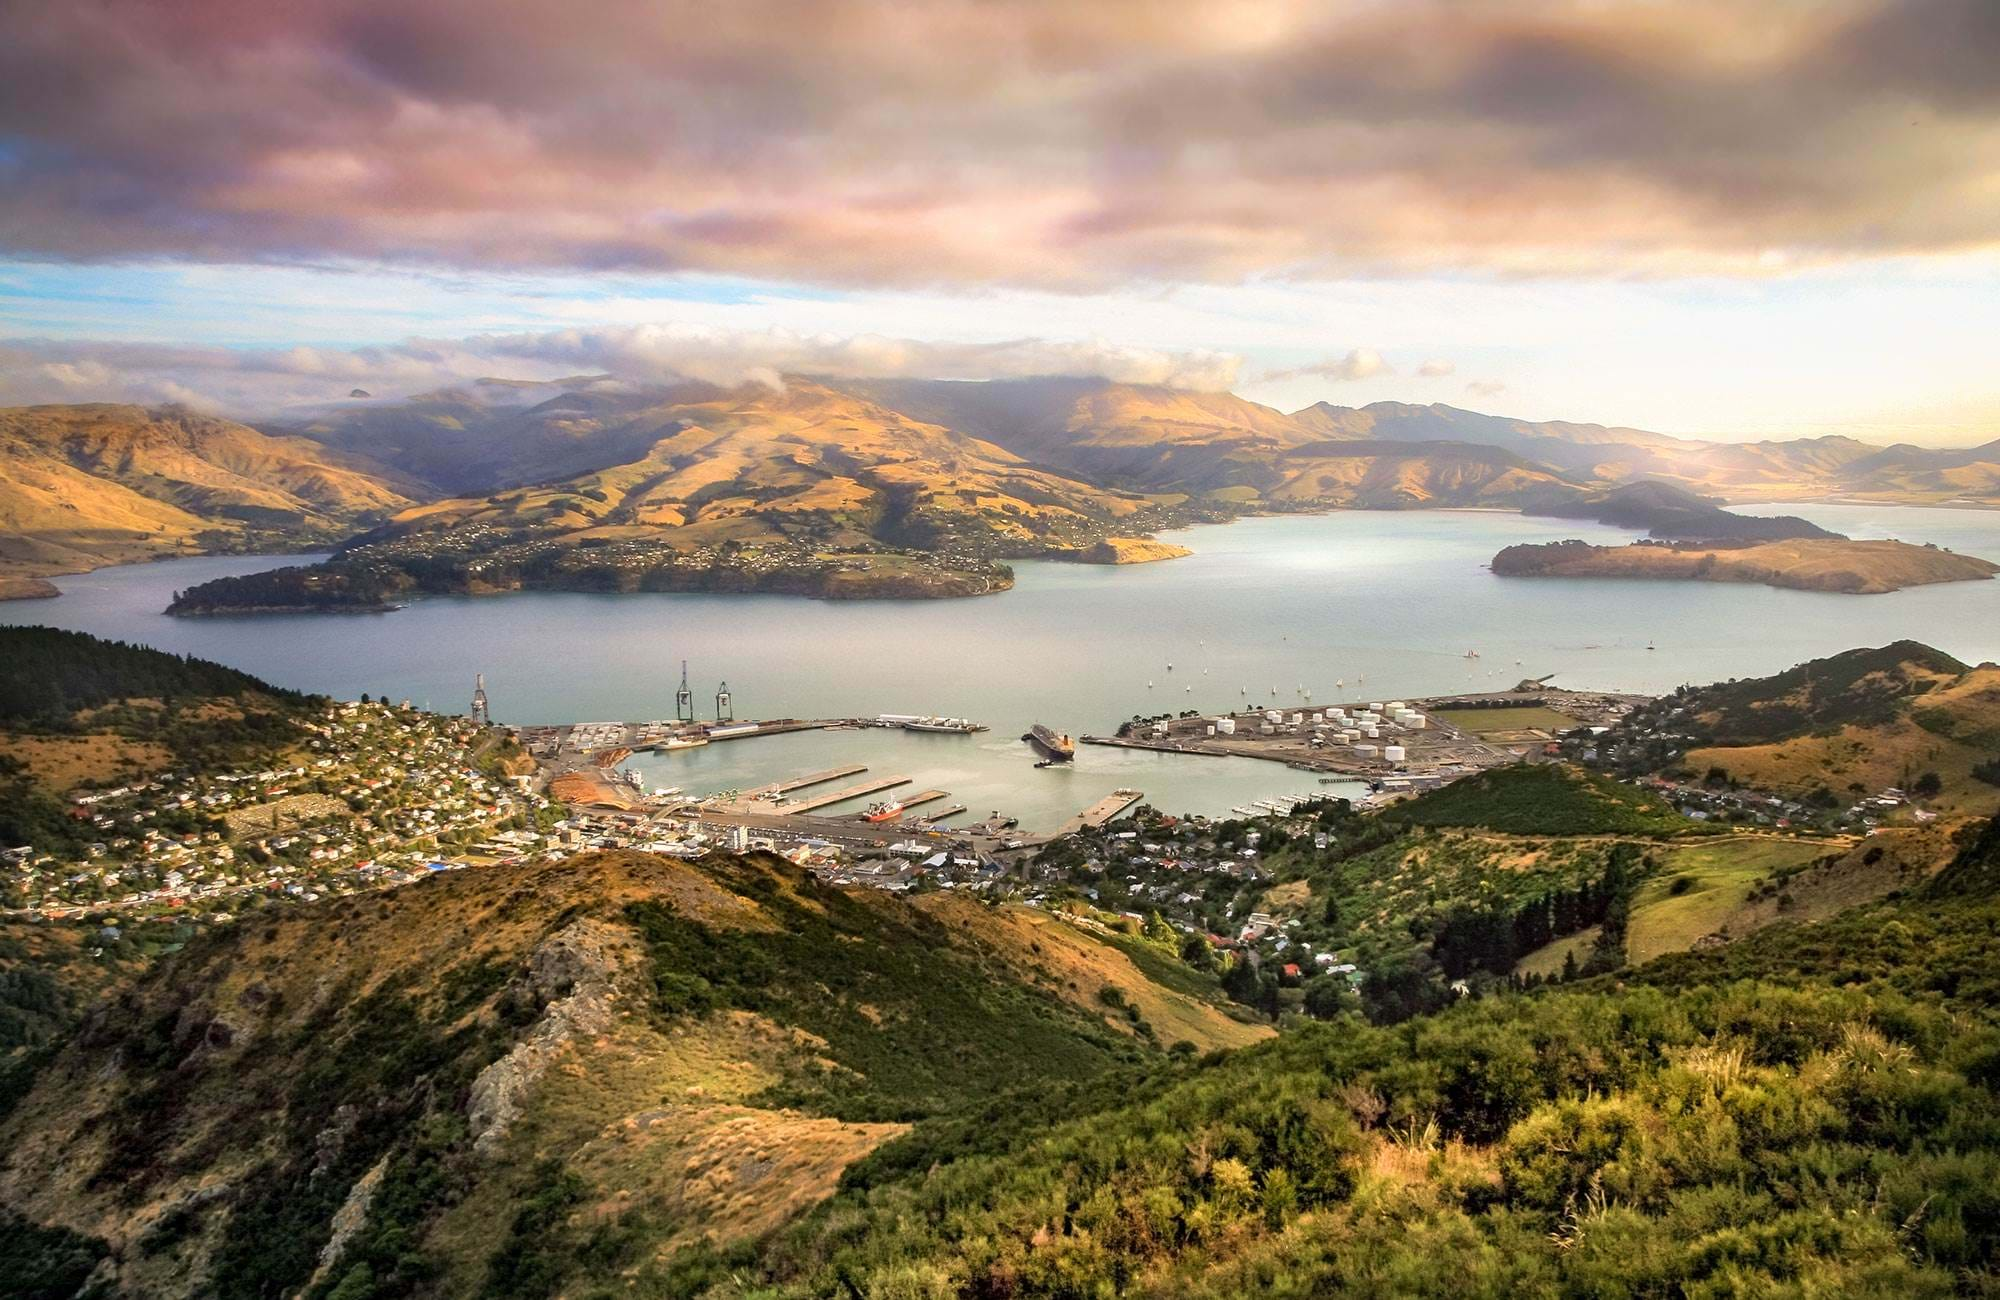 enjoy the view over christchurch while studying in New Zealand